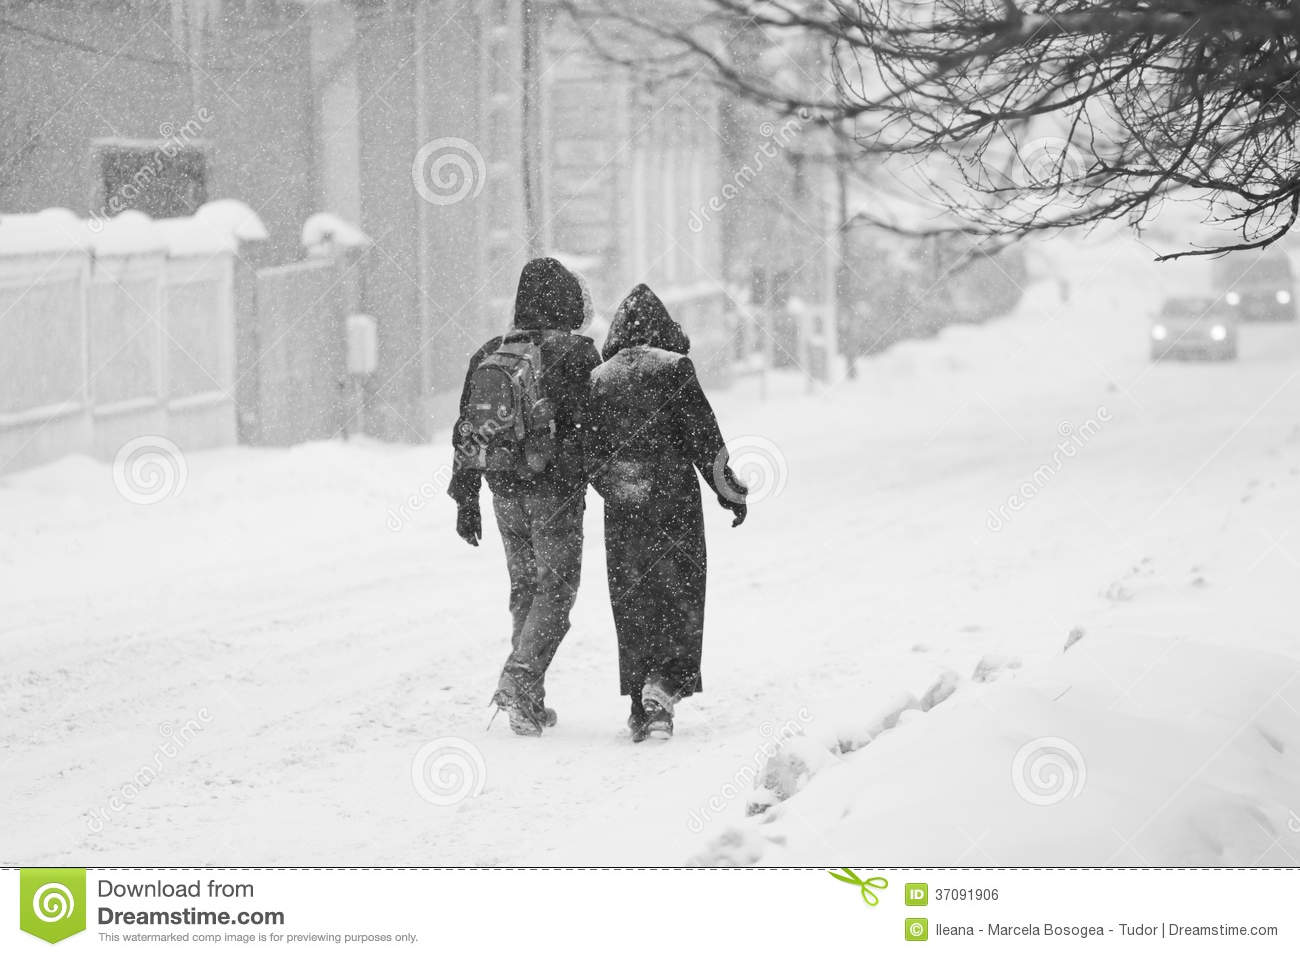 walking in the snow - photo #6